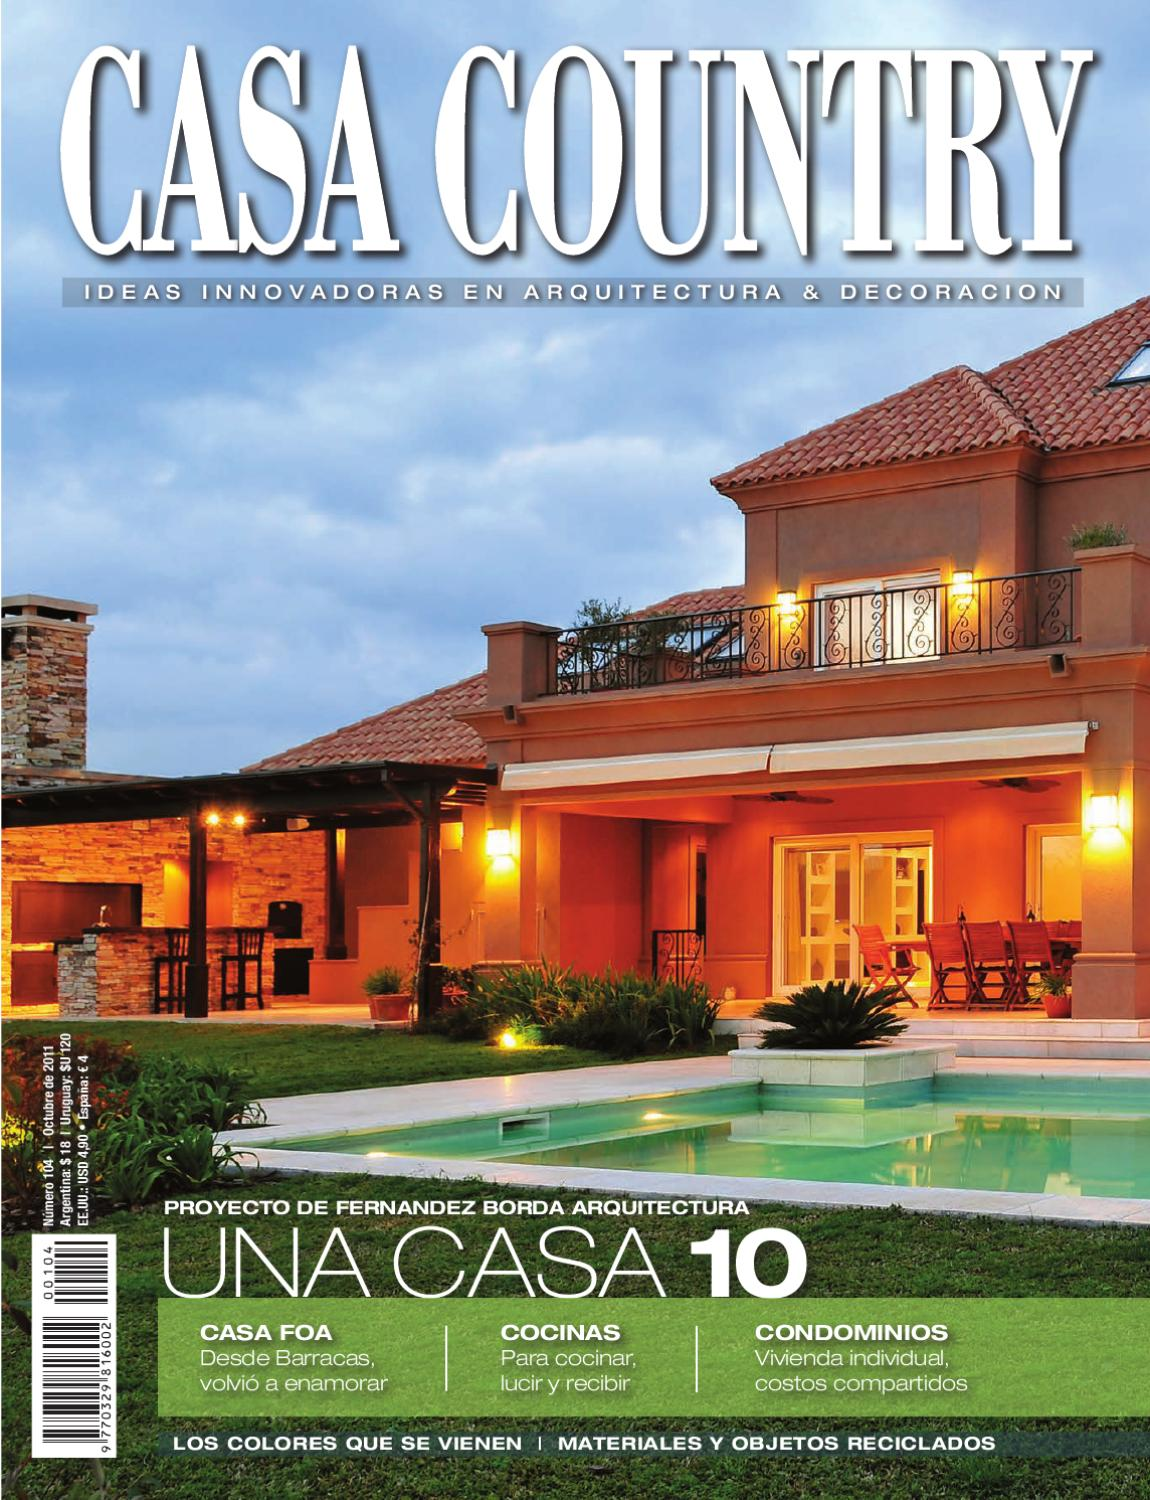 Casa country 104 octubre 2011 by martin jaunarena issuu for Modelos de techos metalicos para casas